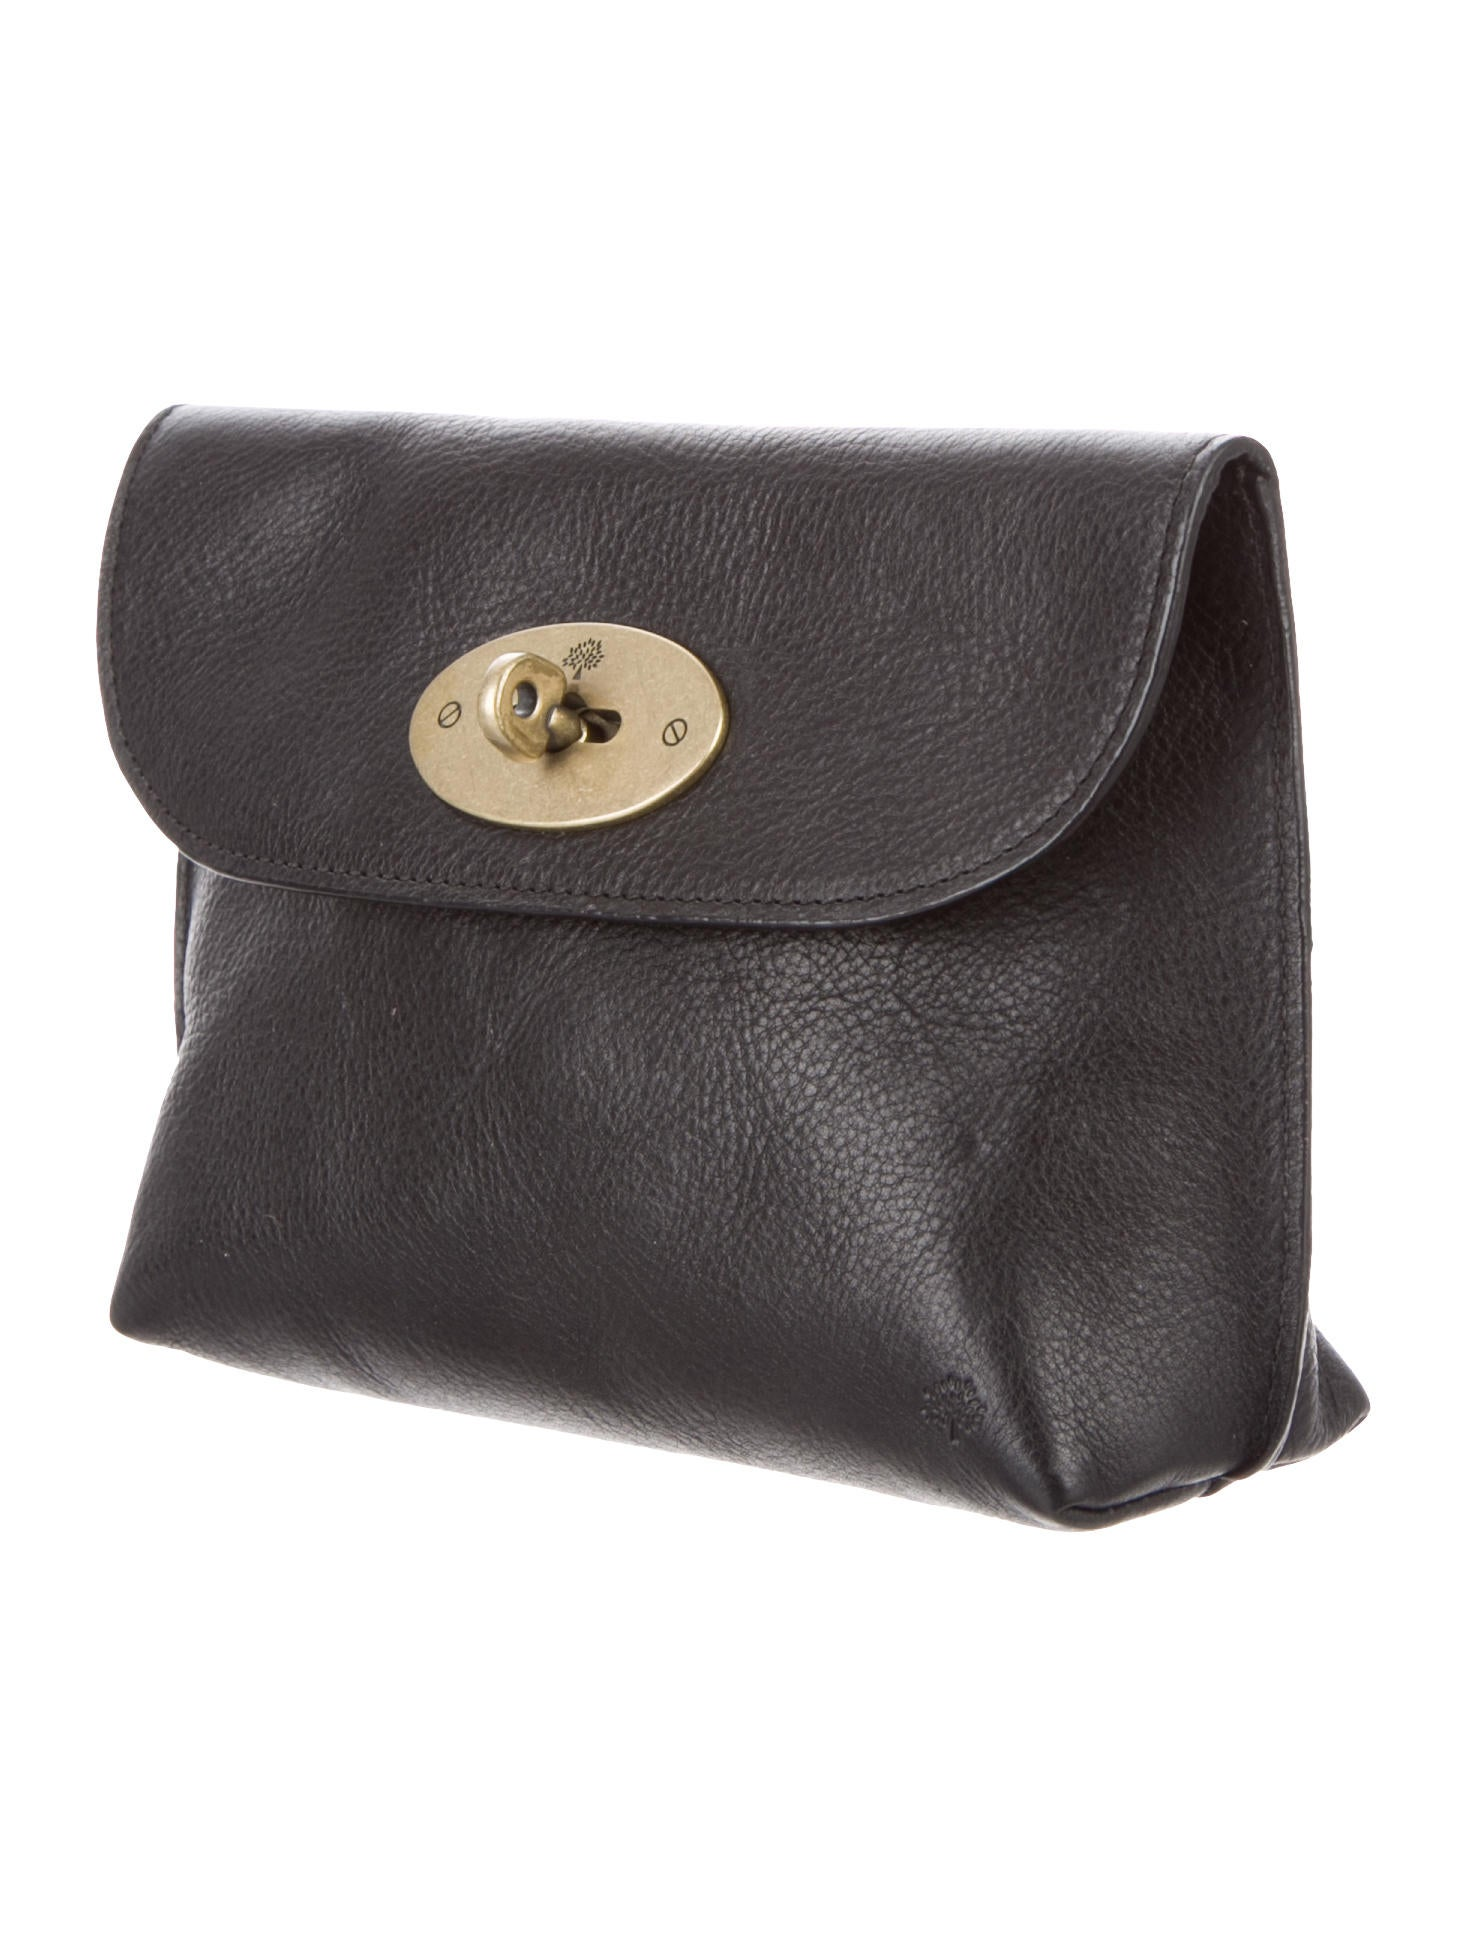 ... 50% off mulberry clemmie clutch handbags mul21317 the realreal ec7e3  96df7 e95b47144ec7c